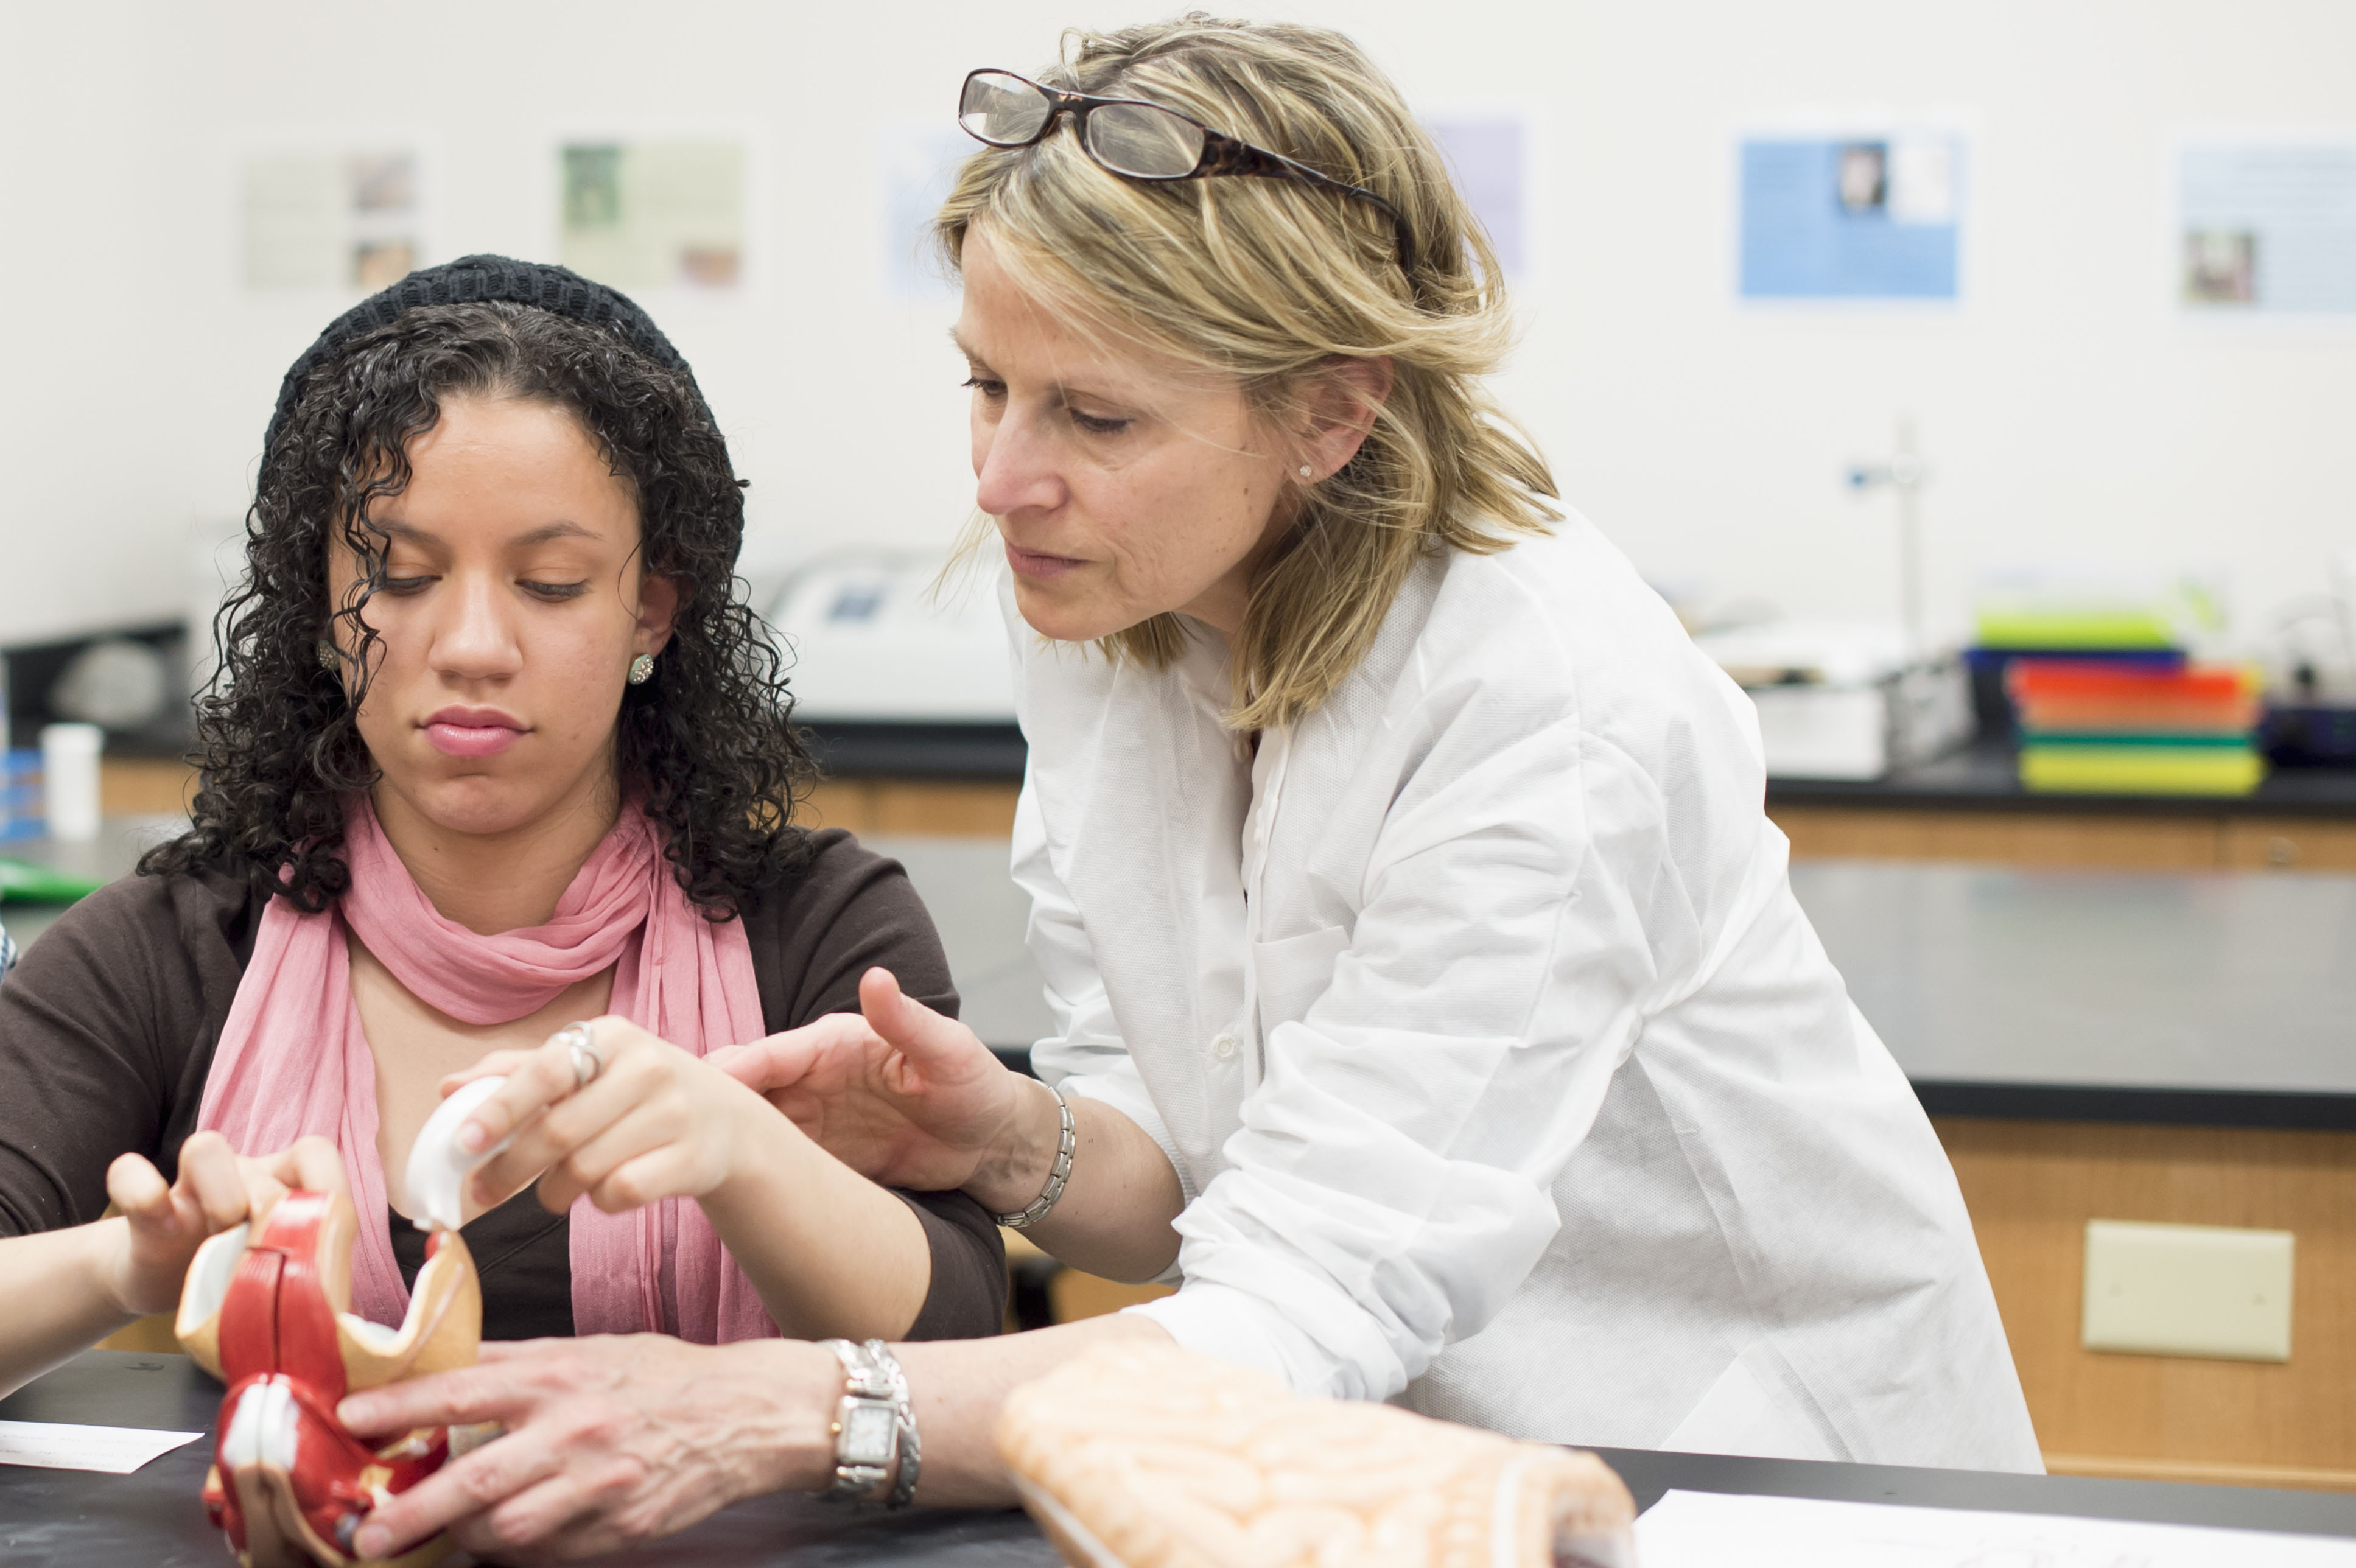 6 Questions To Ask Your Premed Adviser